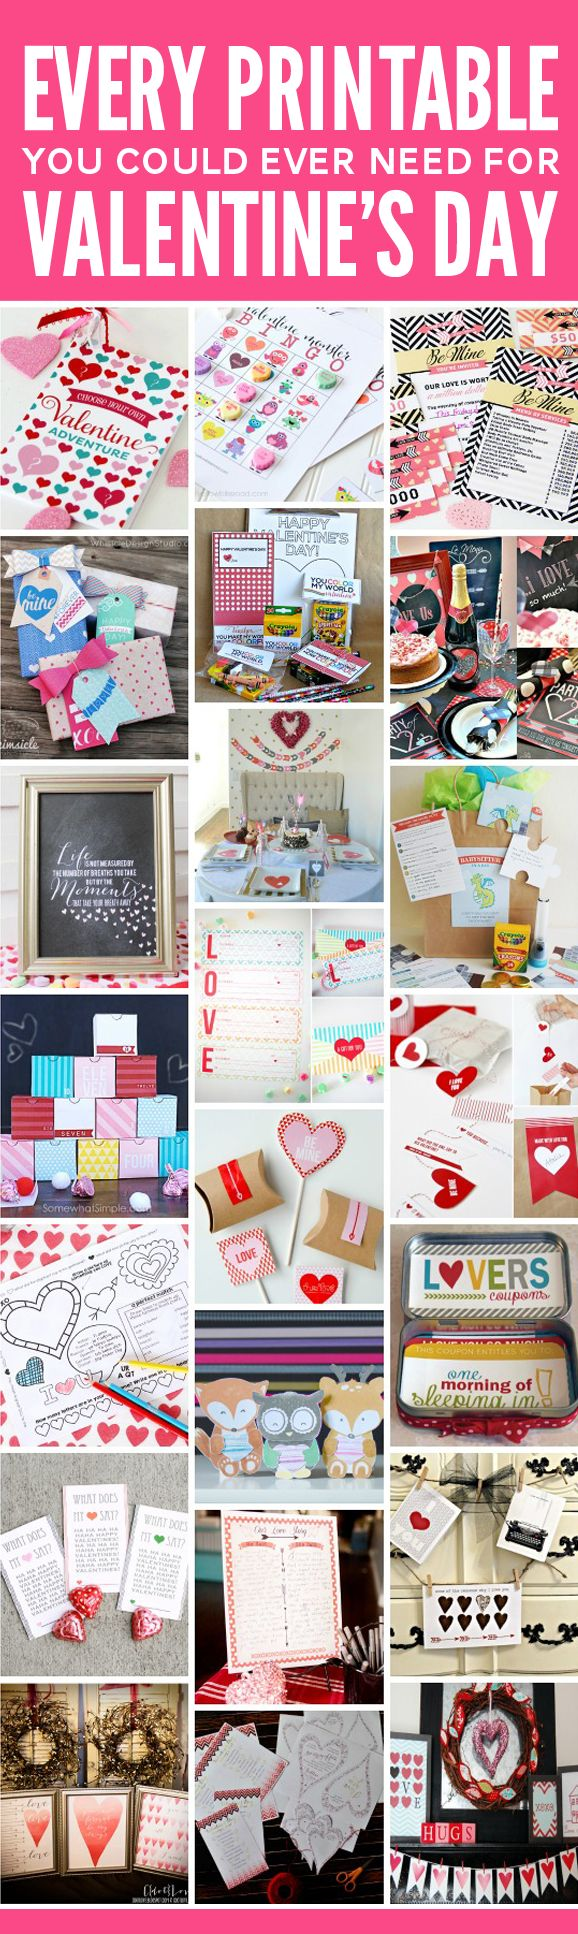 SO many fun printables and ideas in here!  This is going to be the BEST V-day EVER!